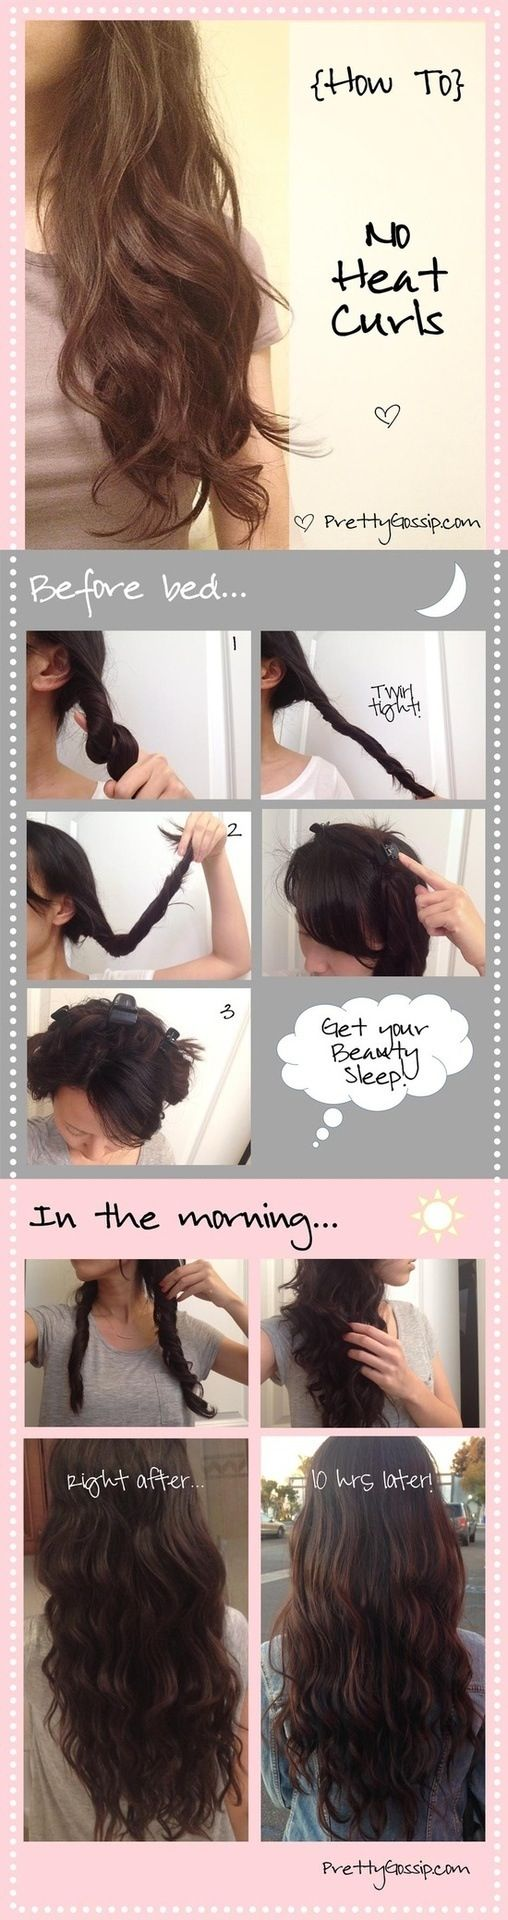 How to curl your hair without having to dry it and use a hot curling iron. Really cool, you should try it out.